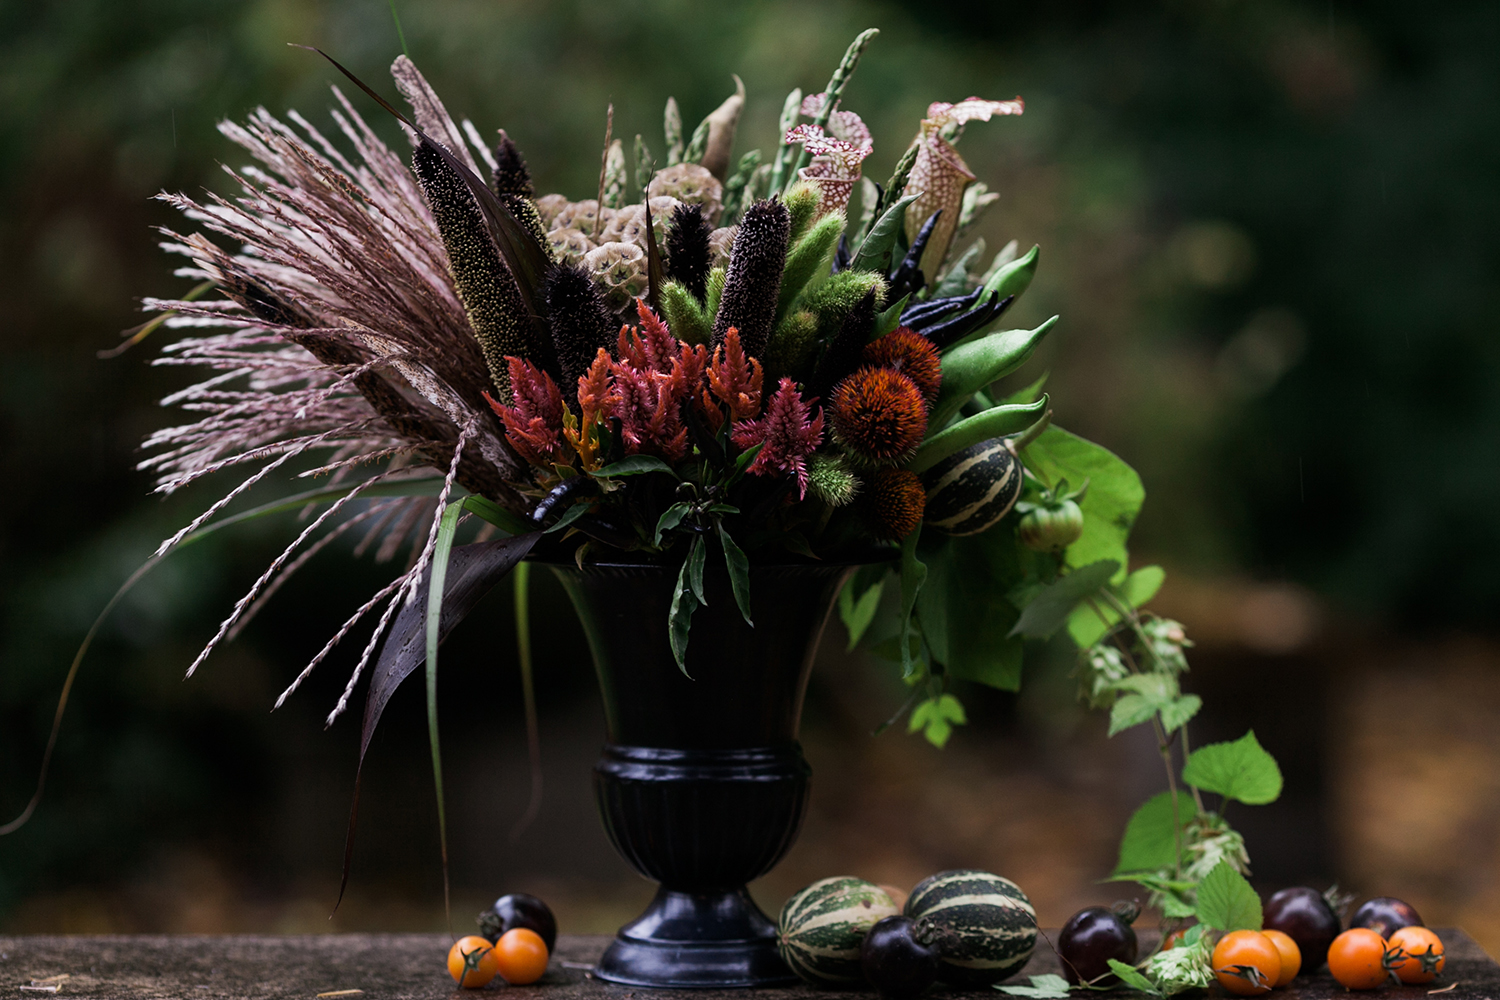 image of creative edible fall and winter floral arrangement with vegetables by Garden Party Flowers of Bainbridge Island florist TJ Montague